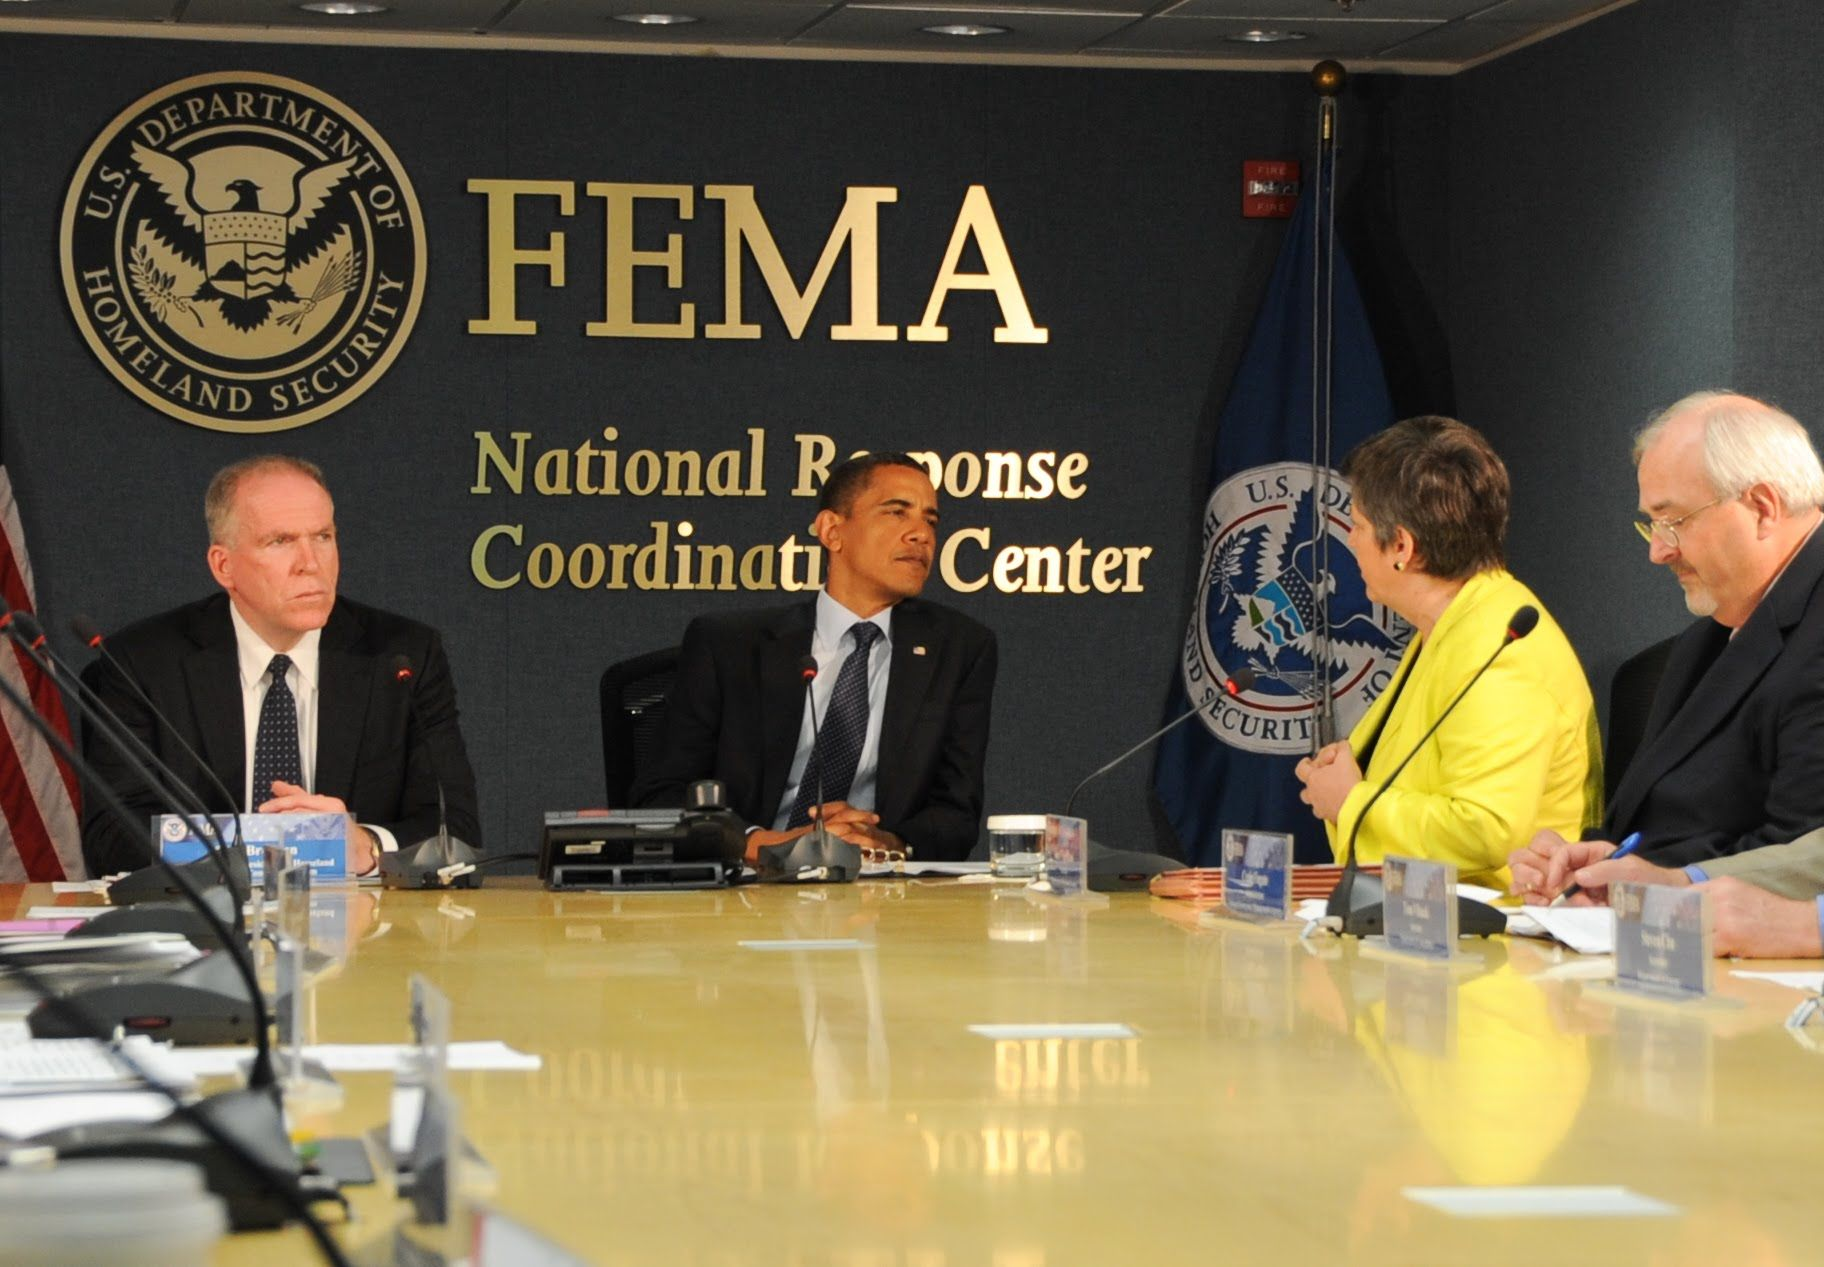 OBAMA AND FEMA ARE WORKING TOGETHER! SOMETHING VERY BAD IS COMING - Mart...